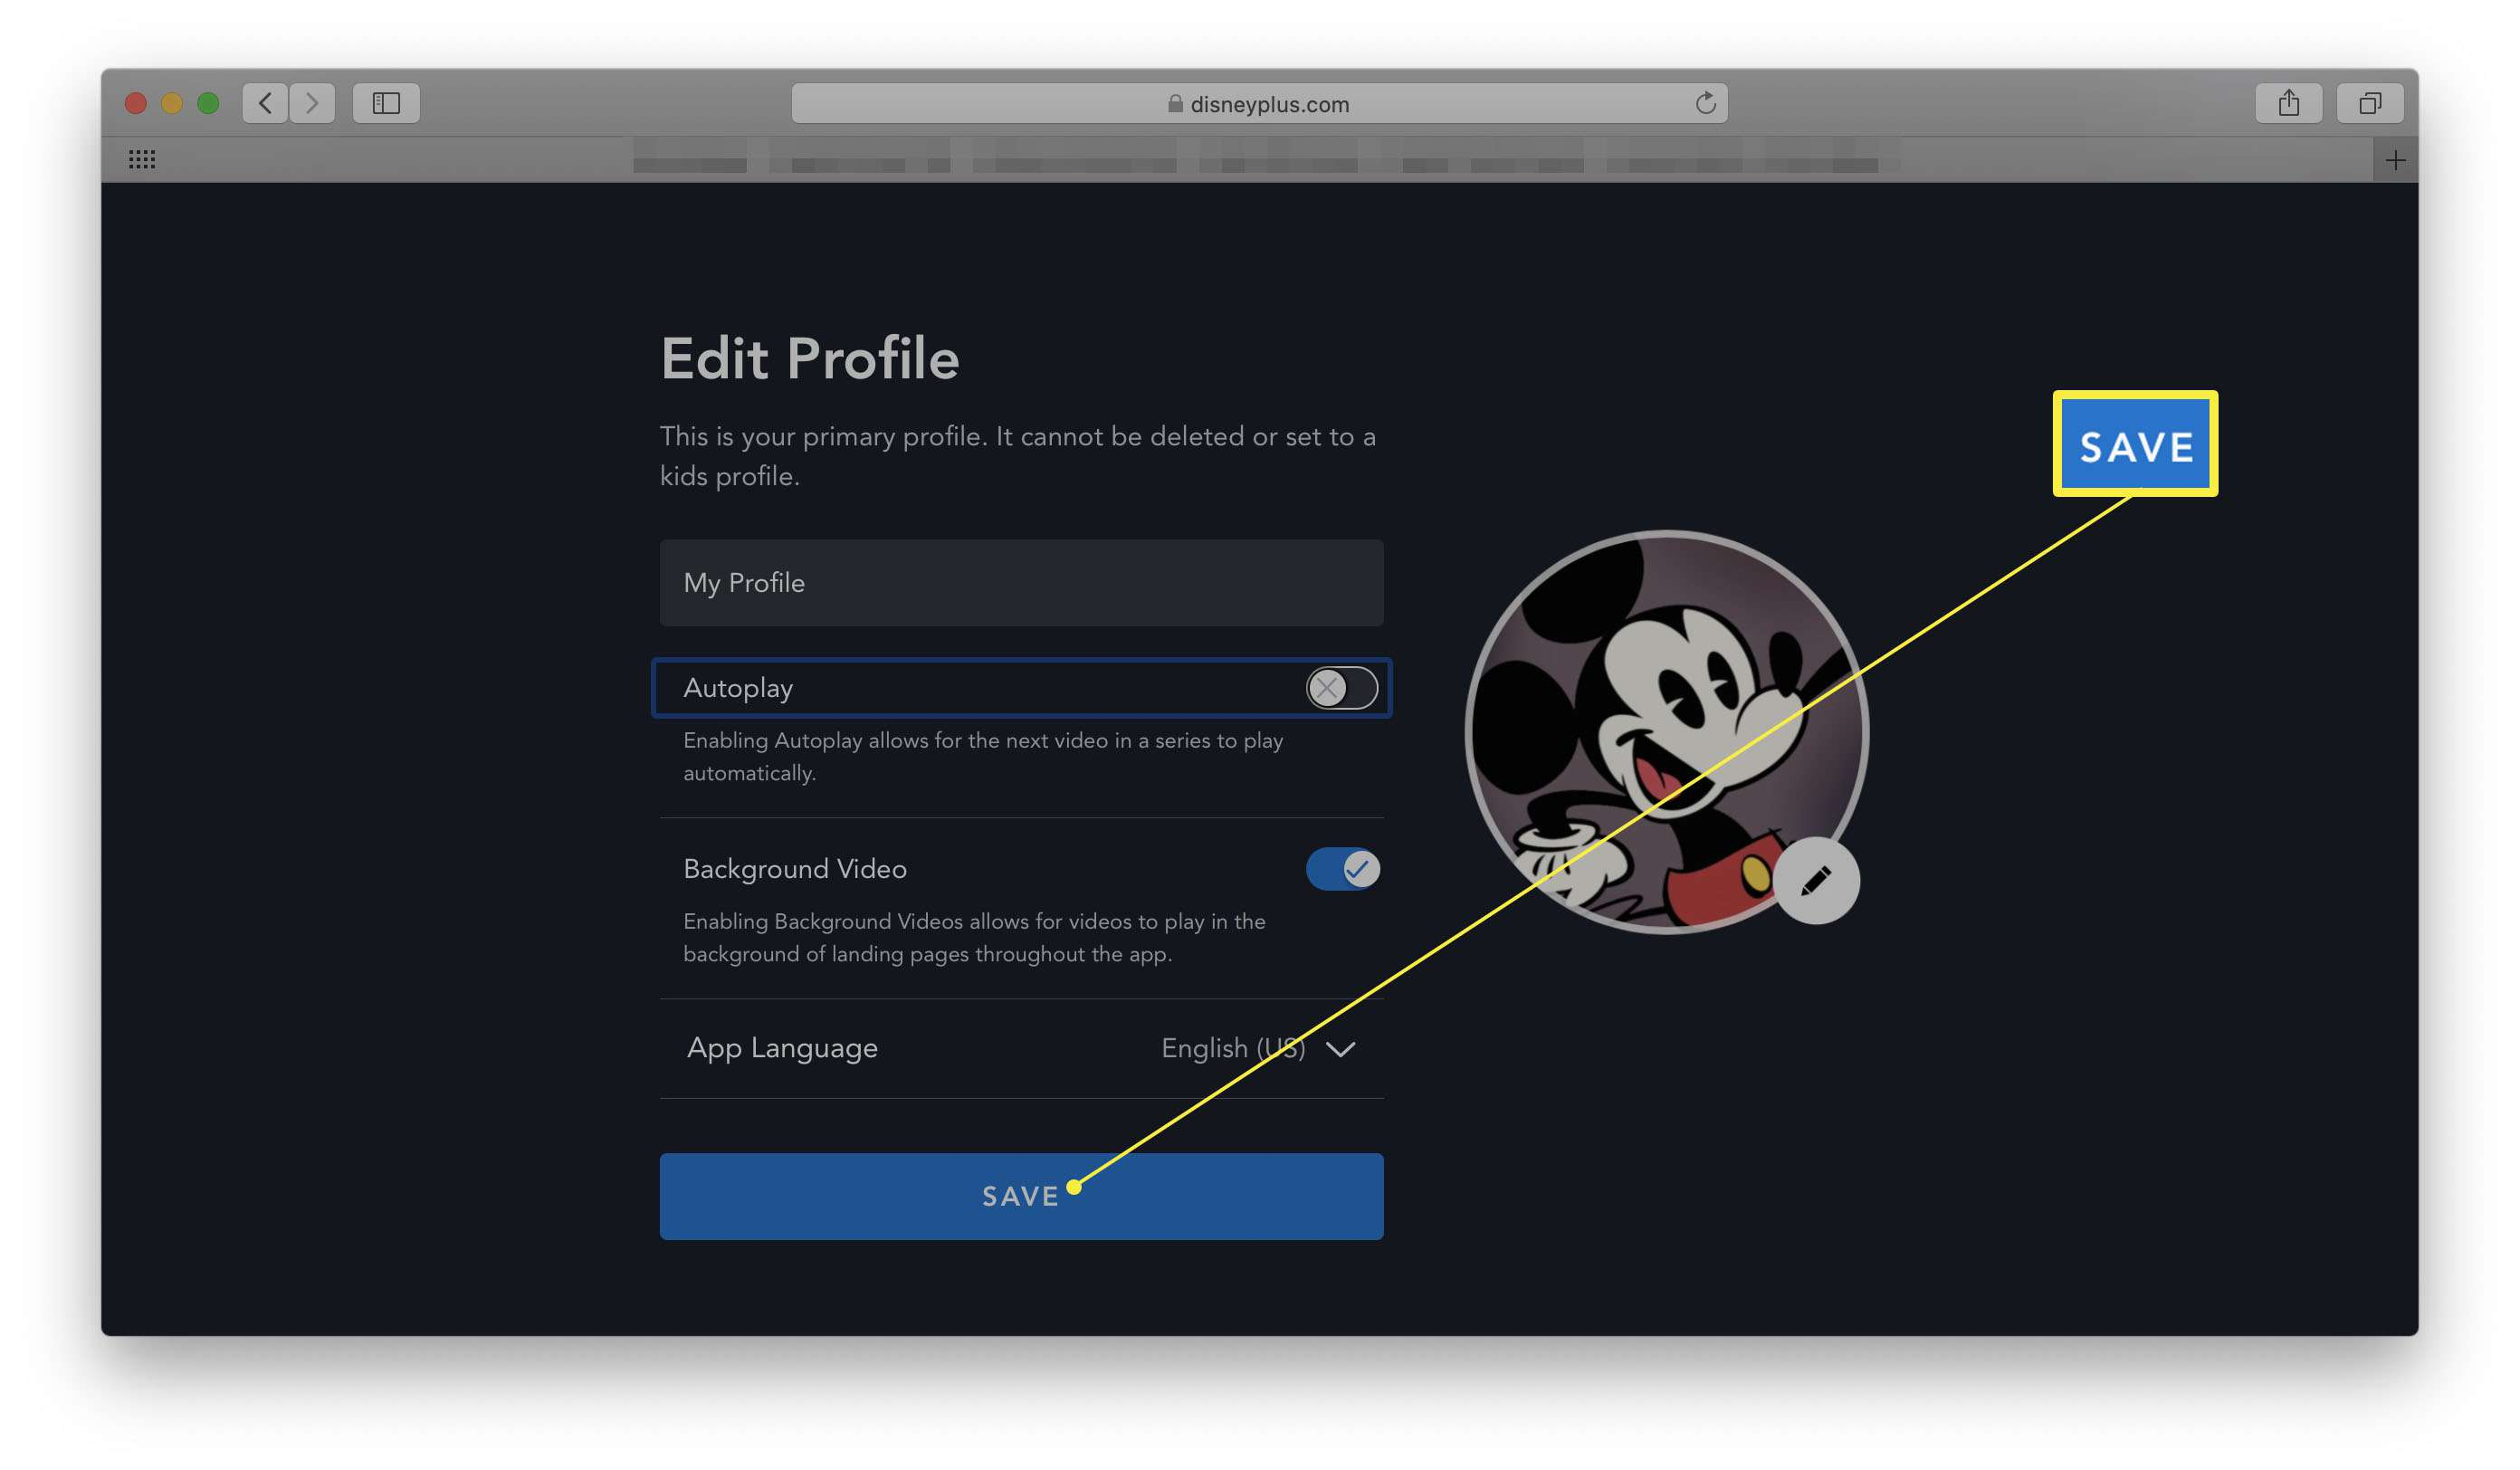 Disney+ with Edit Profile open and Save dialog highlighted